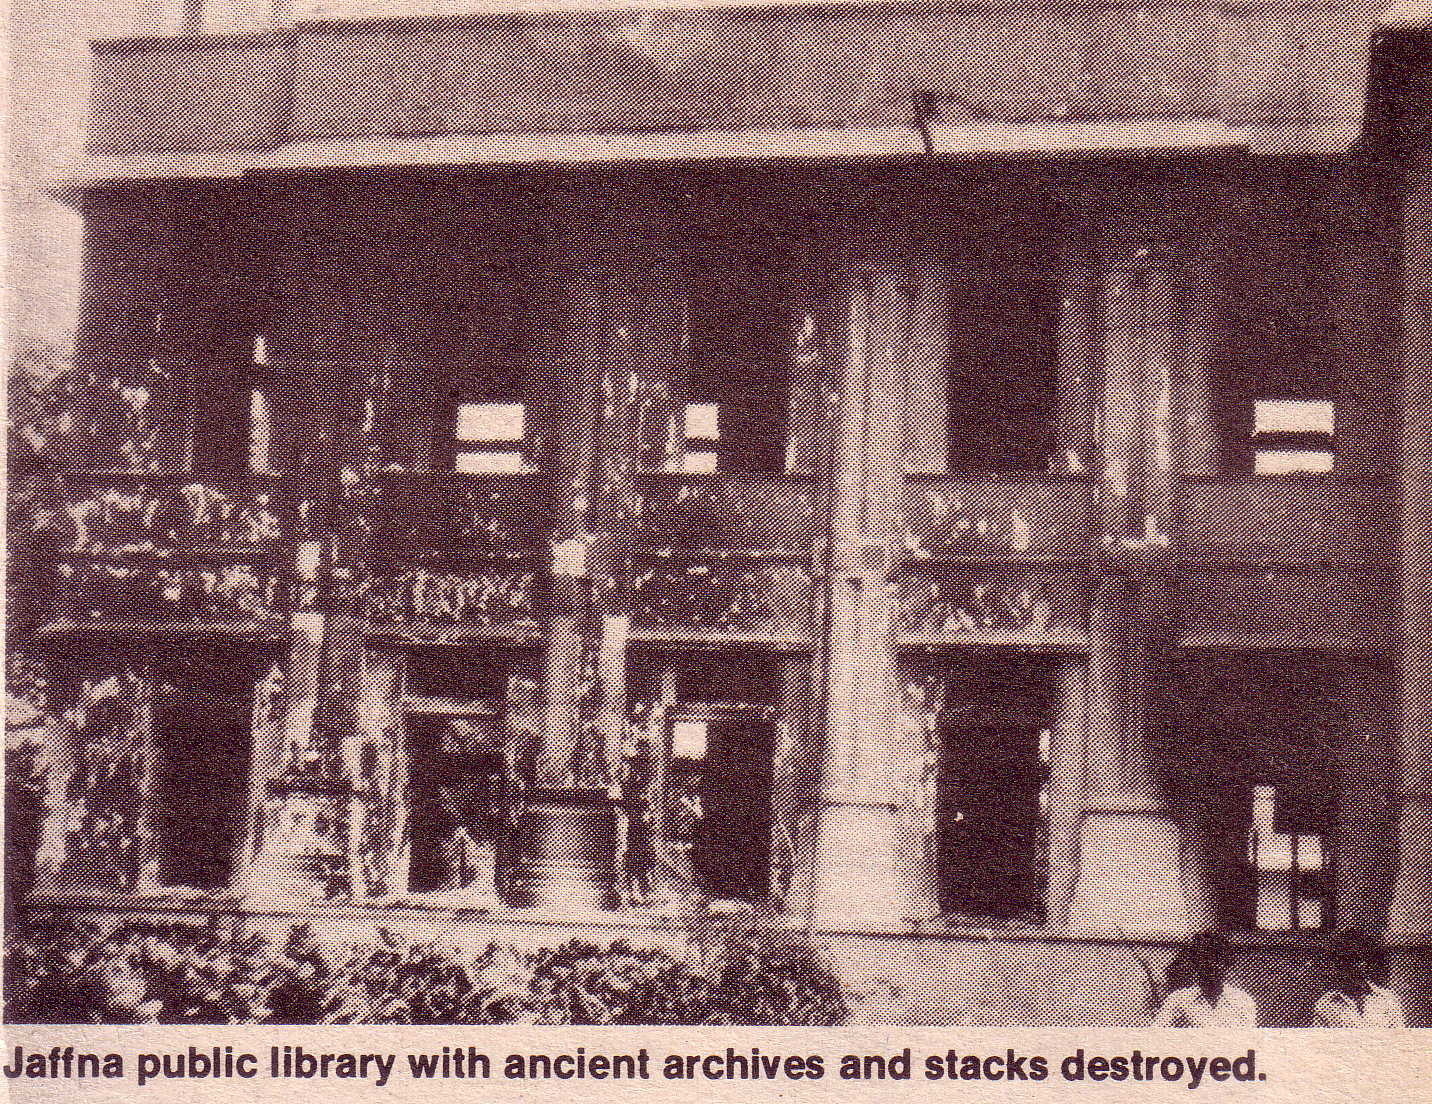 Jaffna Public Library gutted June 1981